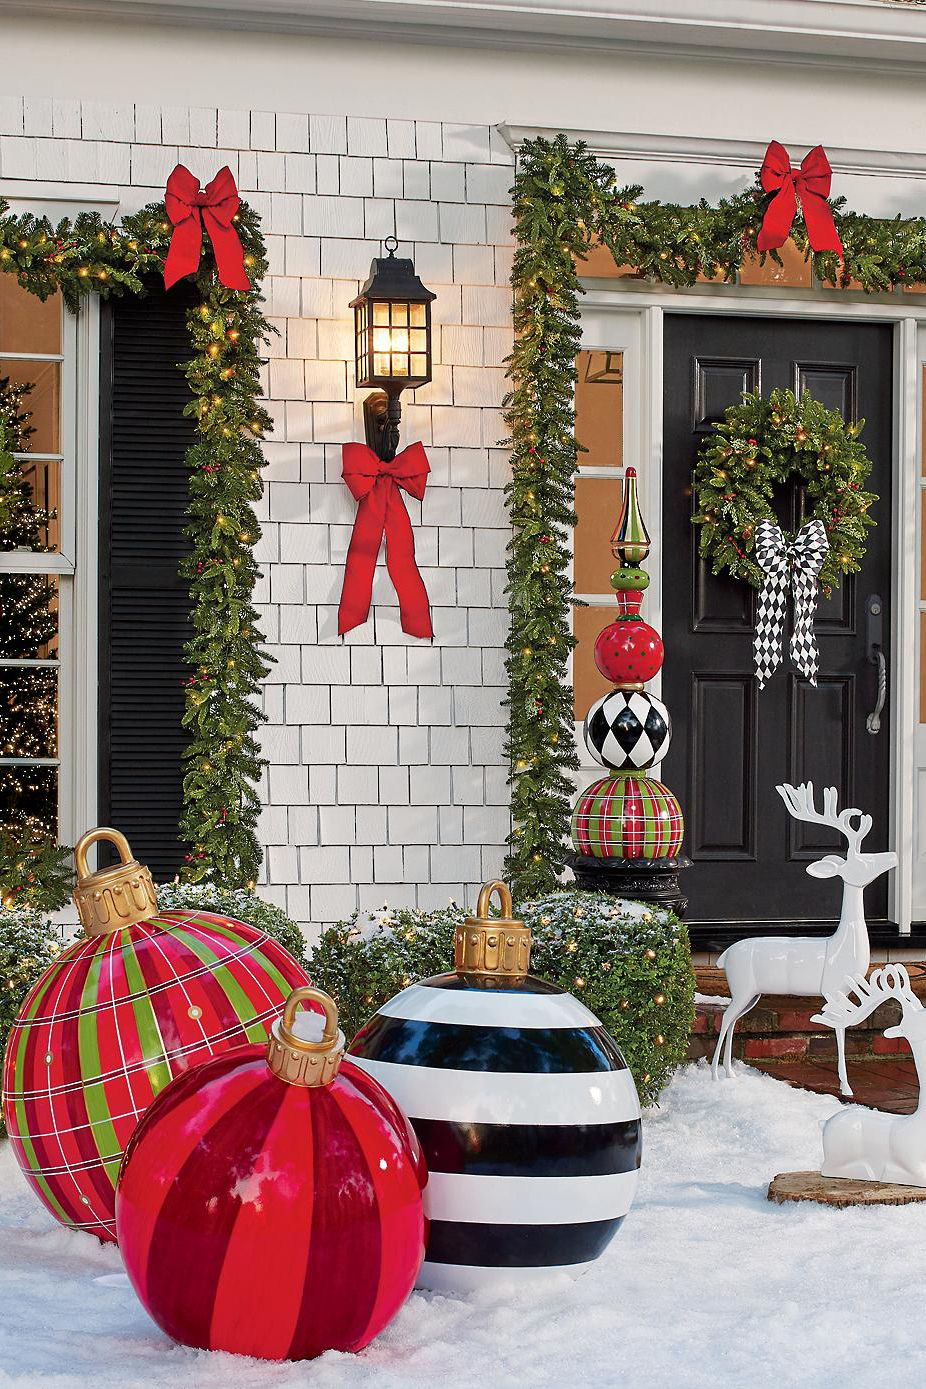 large outdoor christmas ornaments giant holiday ornament decorationslarge outdoor christmas ornaments oversized yard holiday ornaments